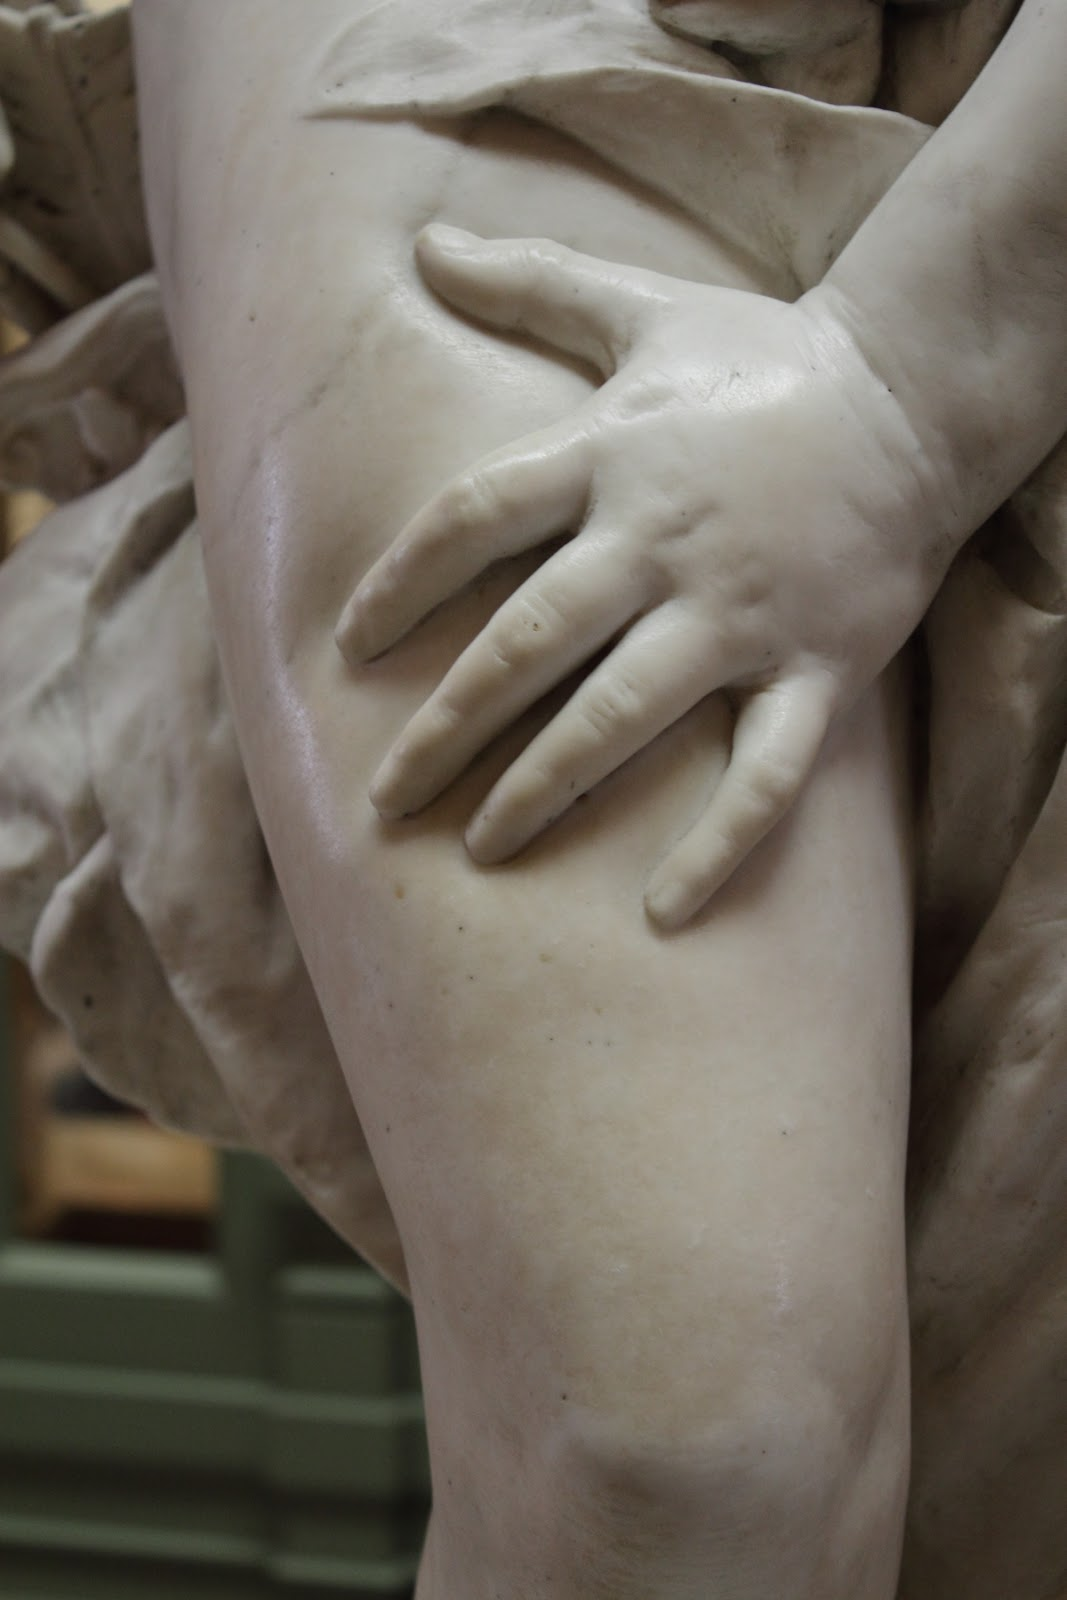 I did not notice until the Tour Guide pointed out - the marble statue actually shows the depression caused by the pressure of Cupid's hand. Impressive!